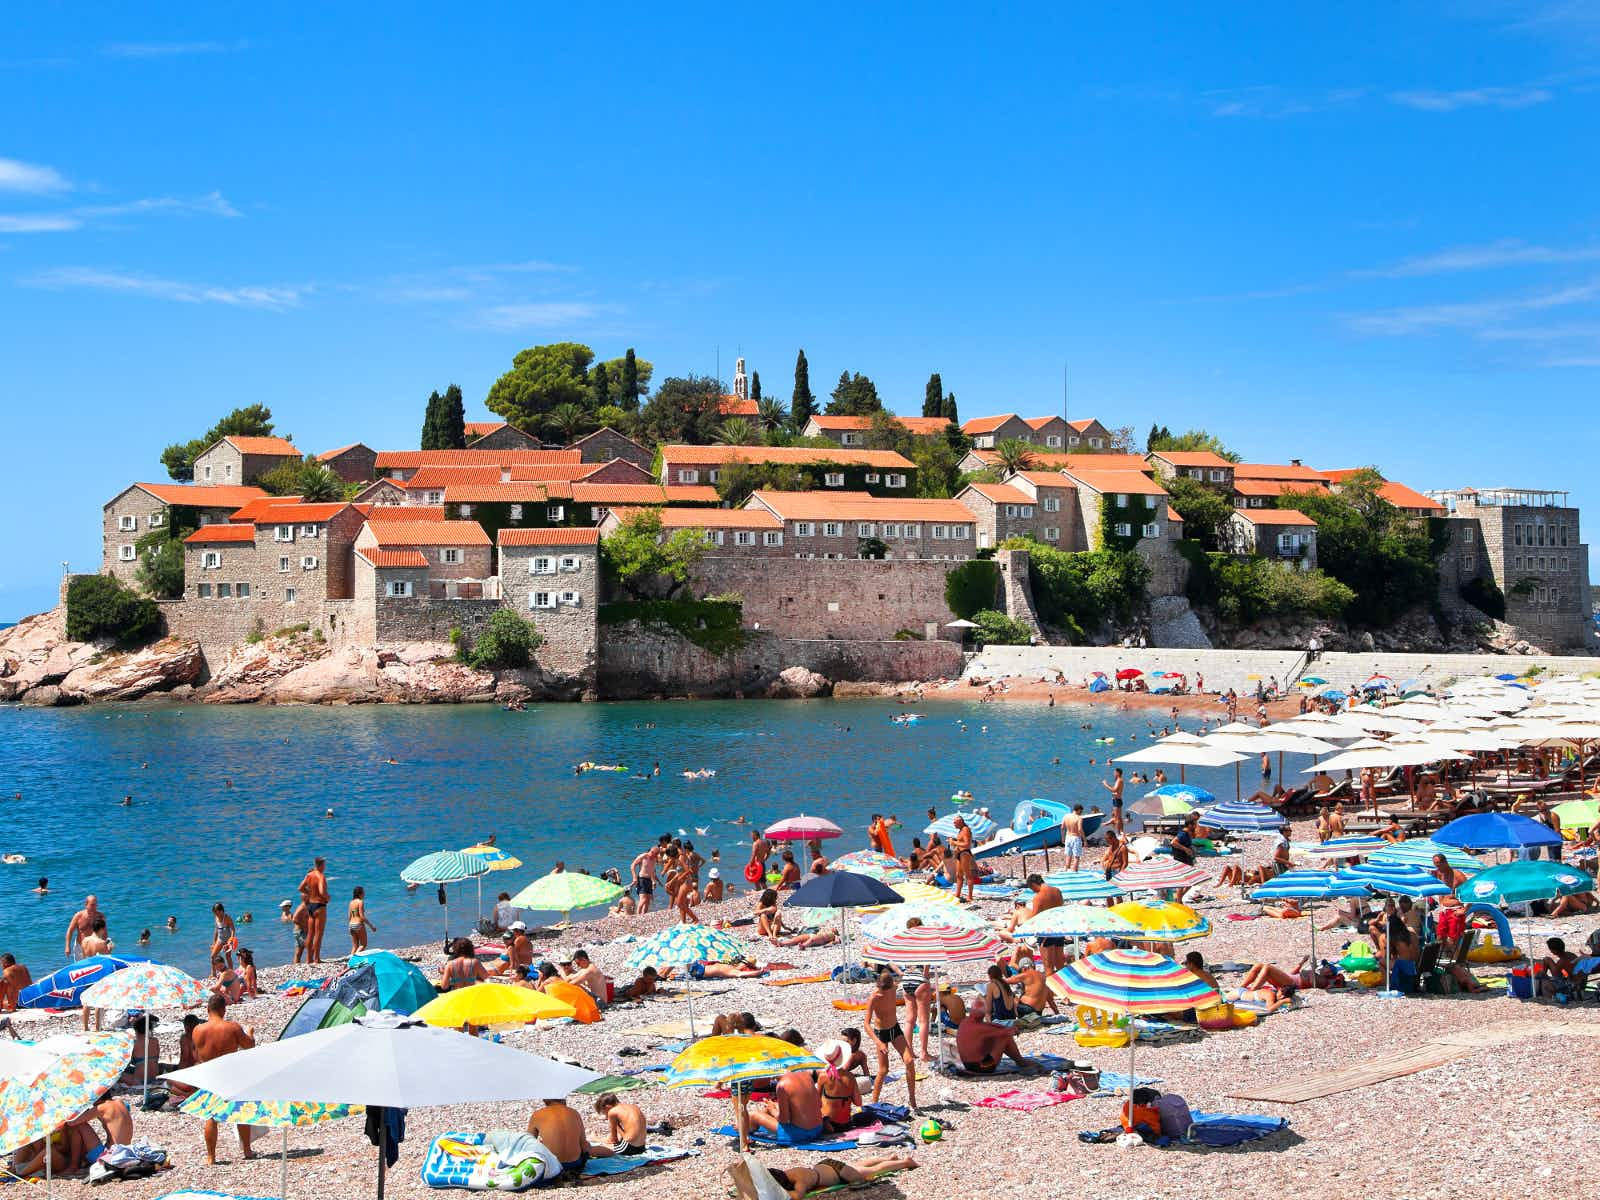 Gorgeous views of Sveti Stefan from the pinkish sands at its southern end © photosmatic / Shutterstock